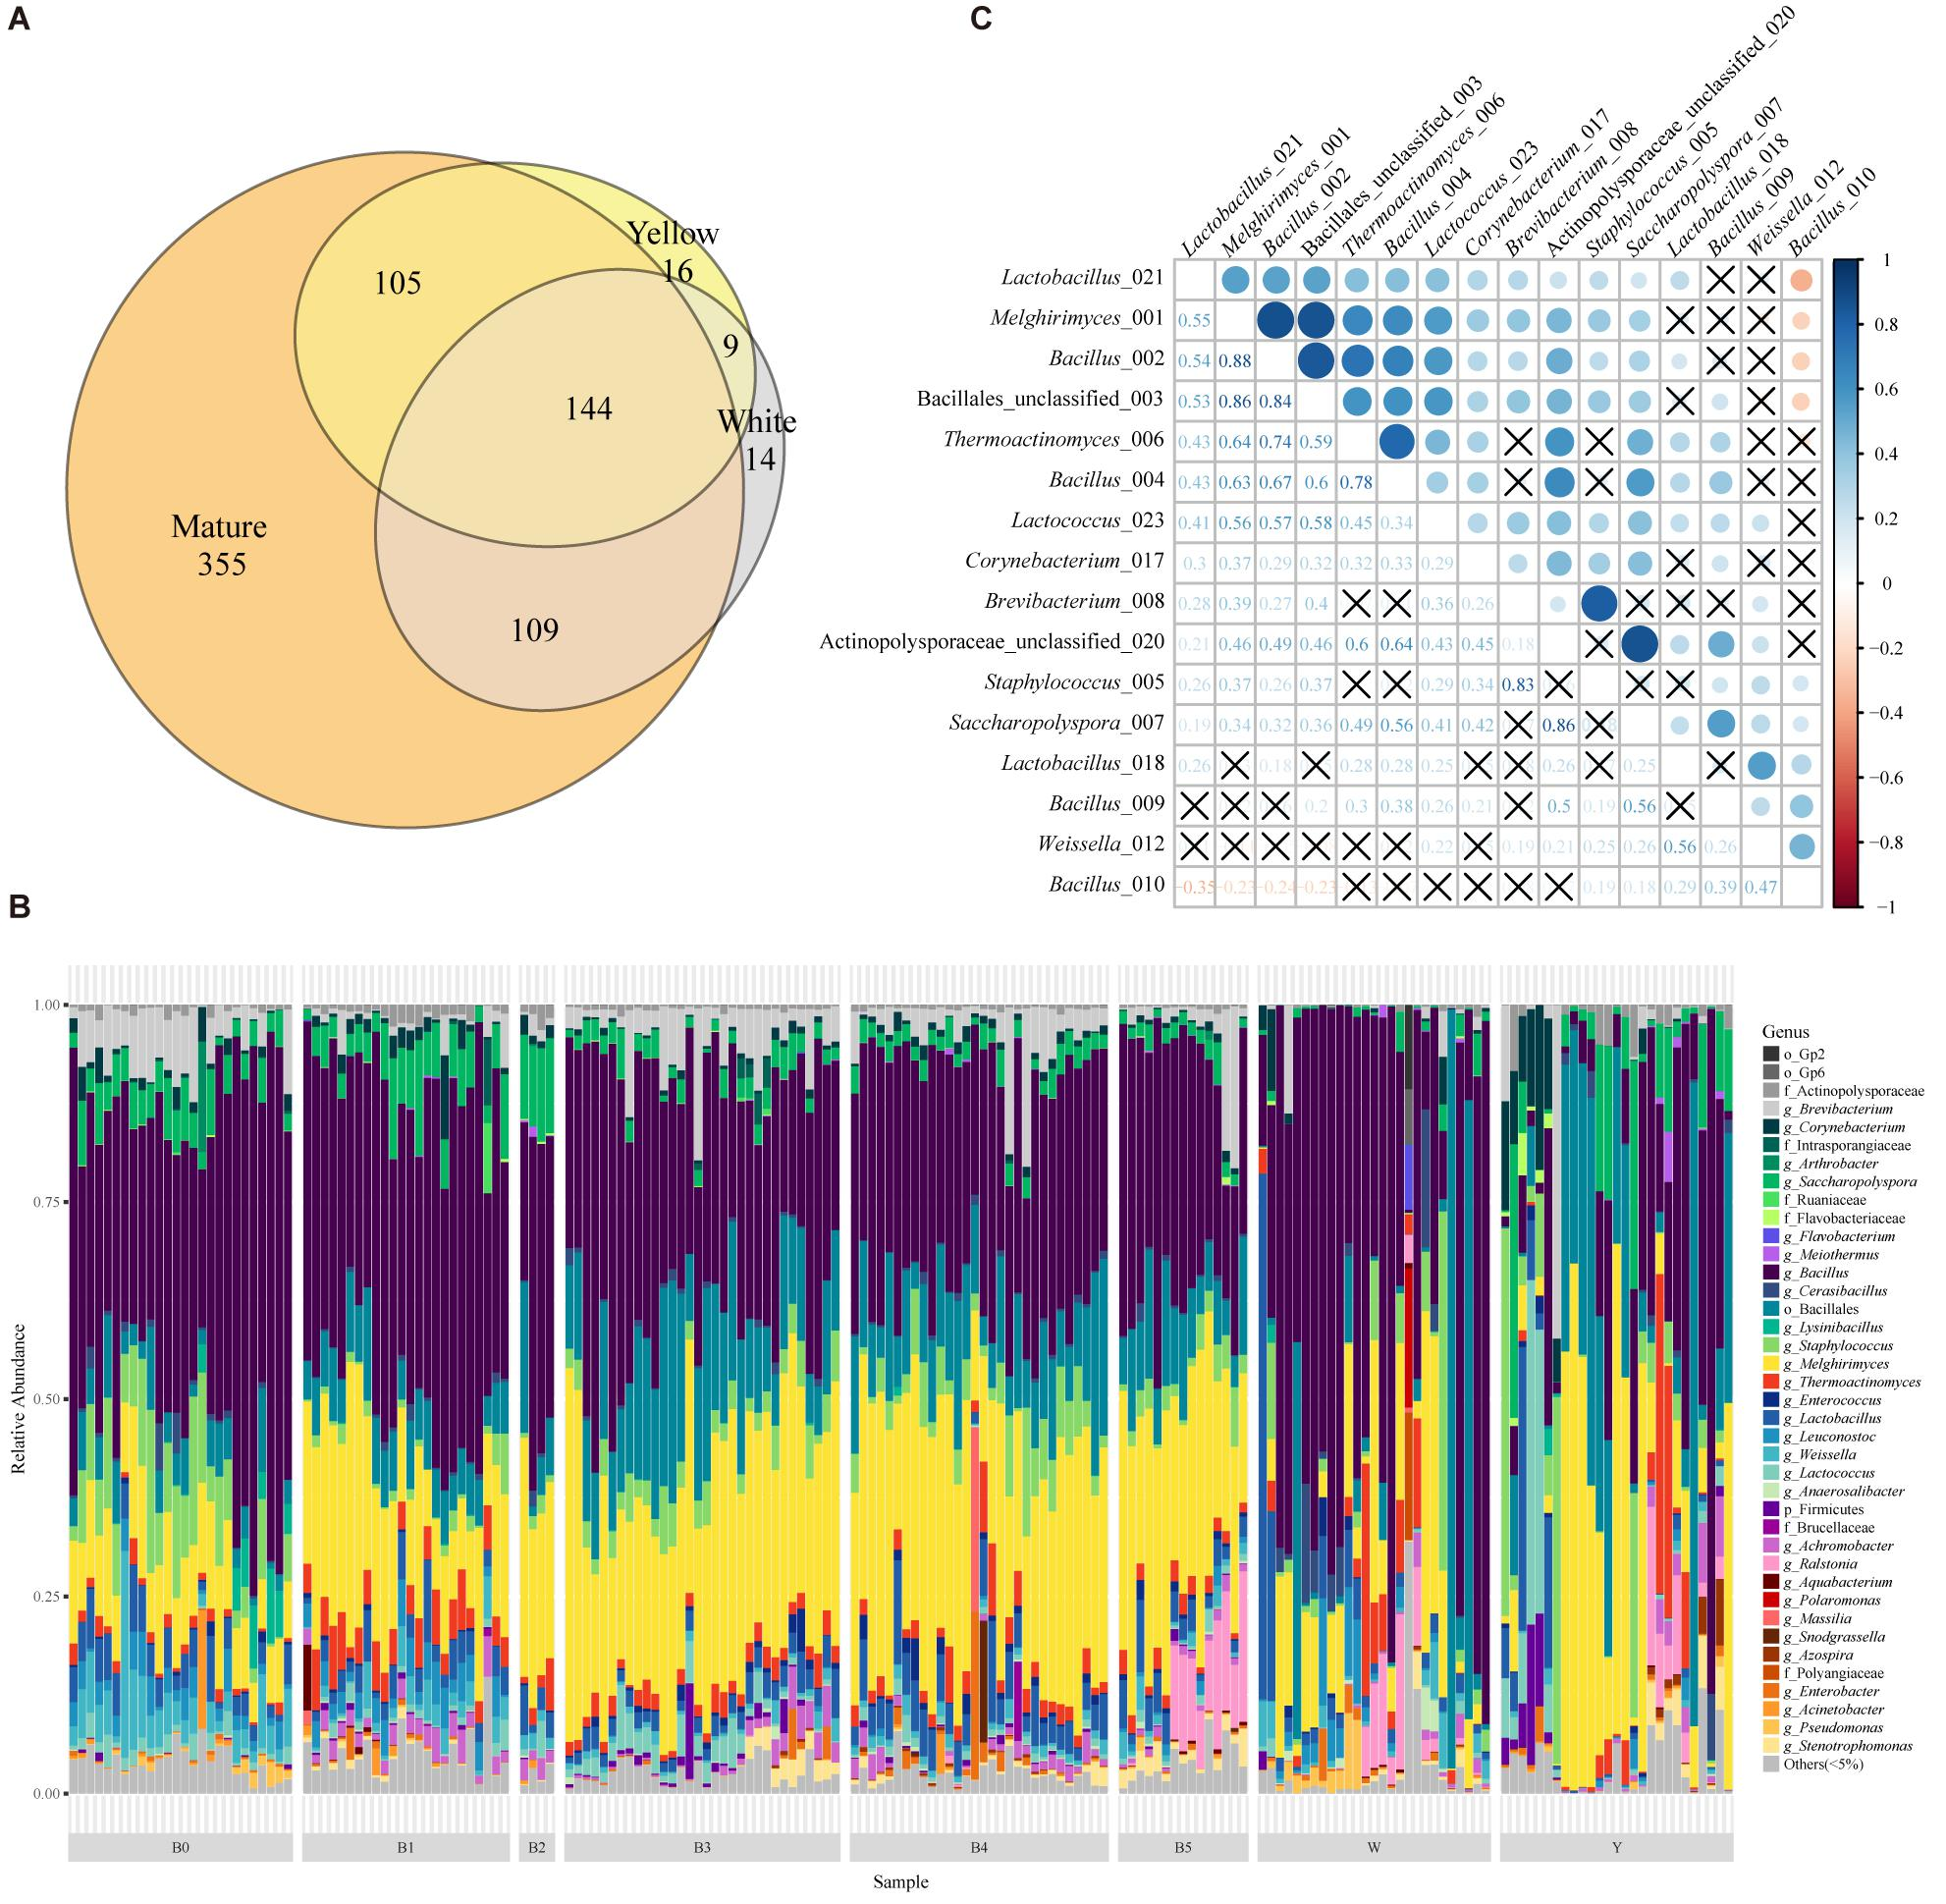 Frontiers | Deciphering the Composition and Functional Profile of